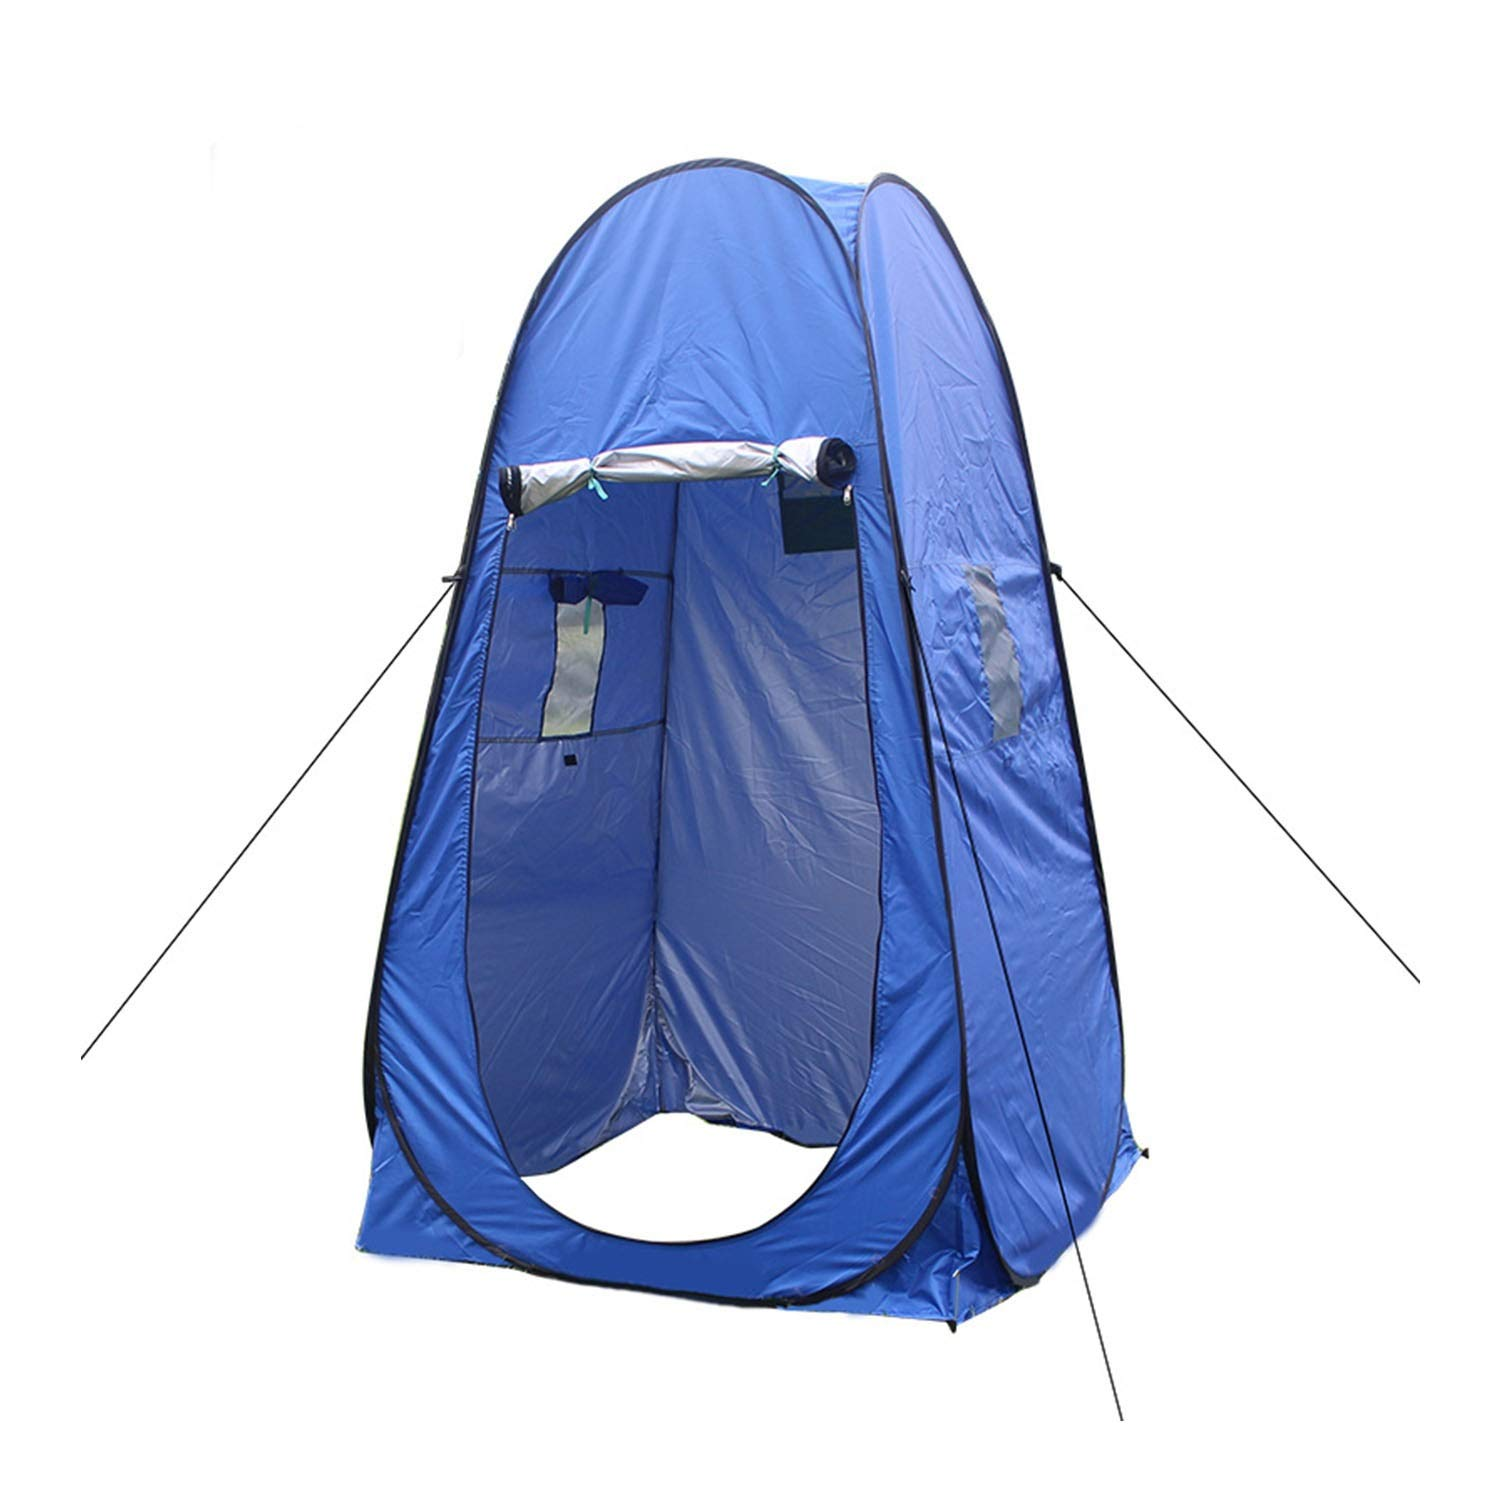 YOZOOE Outdoor Mobile Toilet,Camping Speed Open Tent, Automatic Dressing Account, Bathing Single Tent, Easy to Carry Camping Supplies (Color : Blue) by YOZOOE